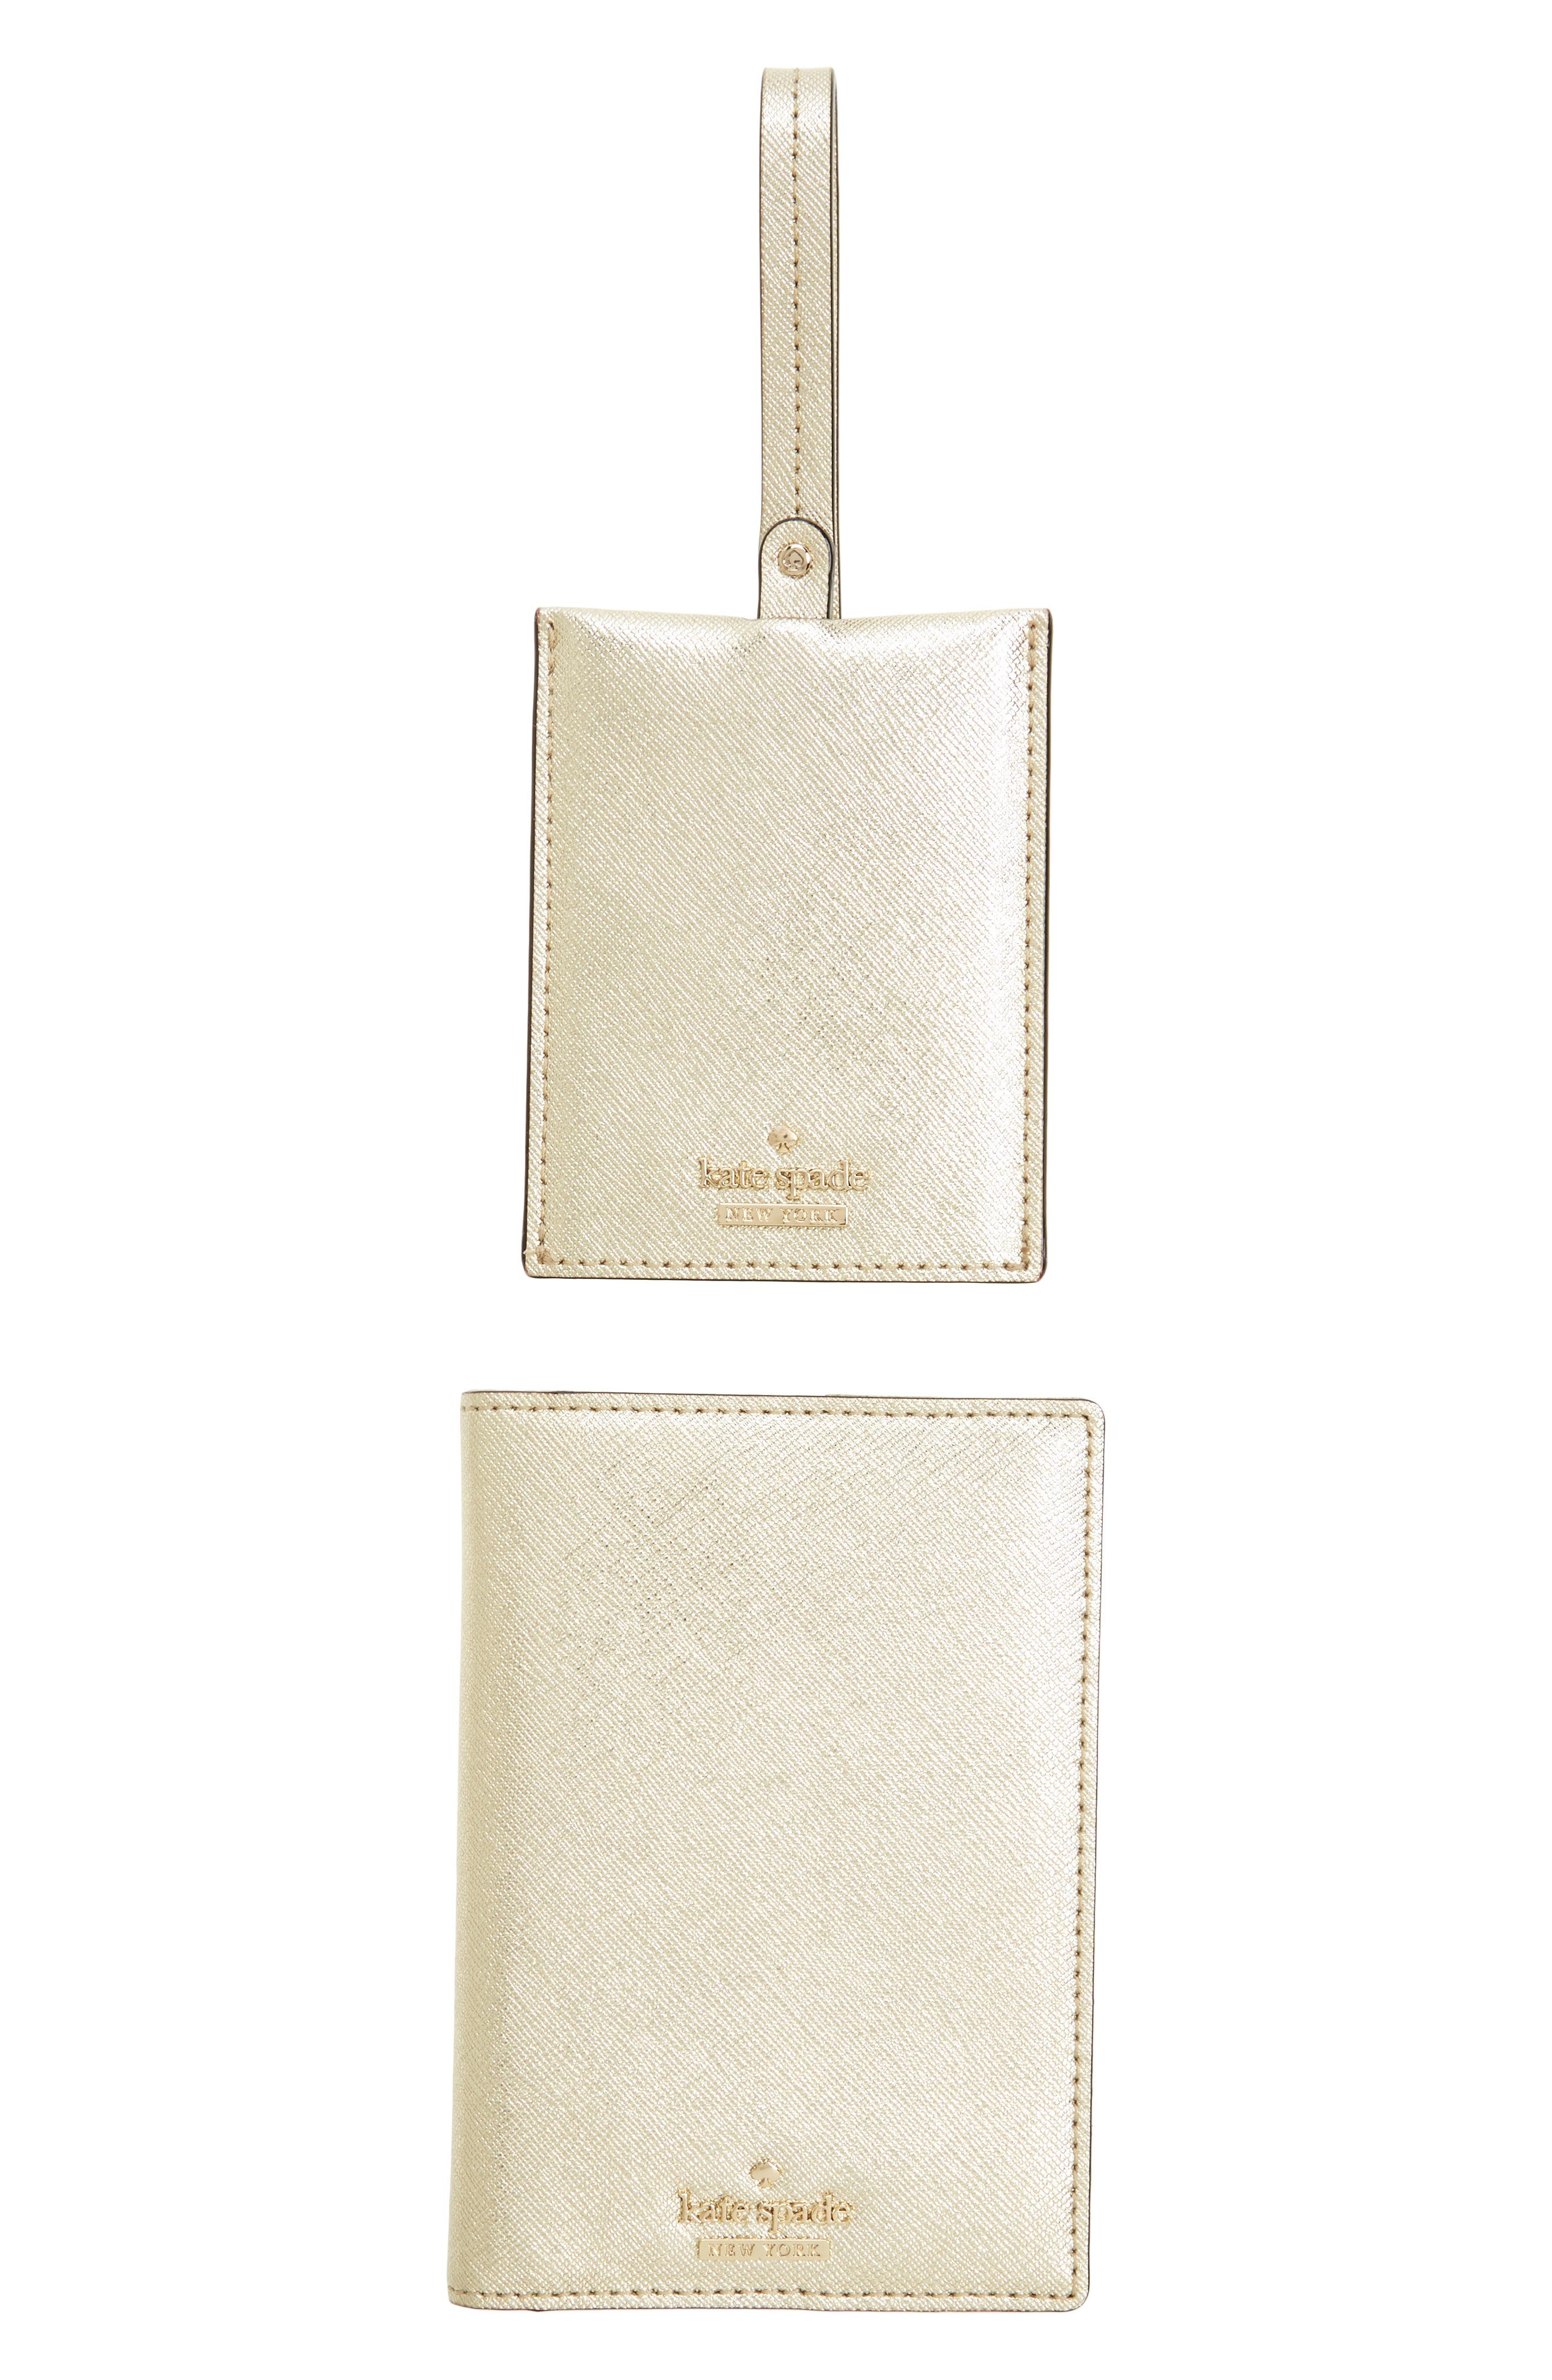 kate spade new york leather passport case & luggage tag set